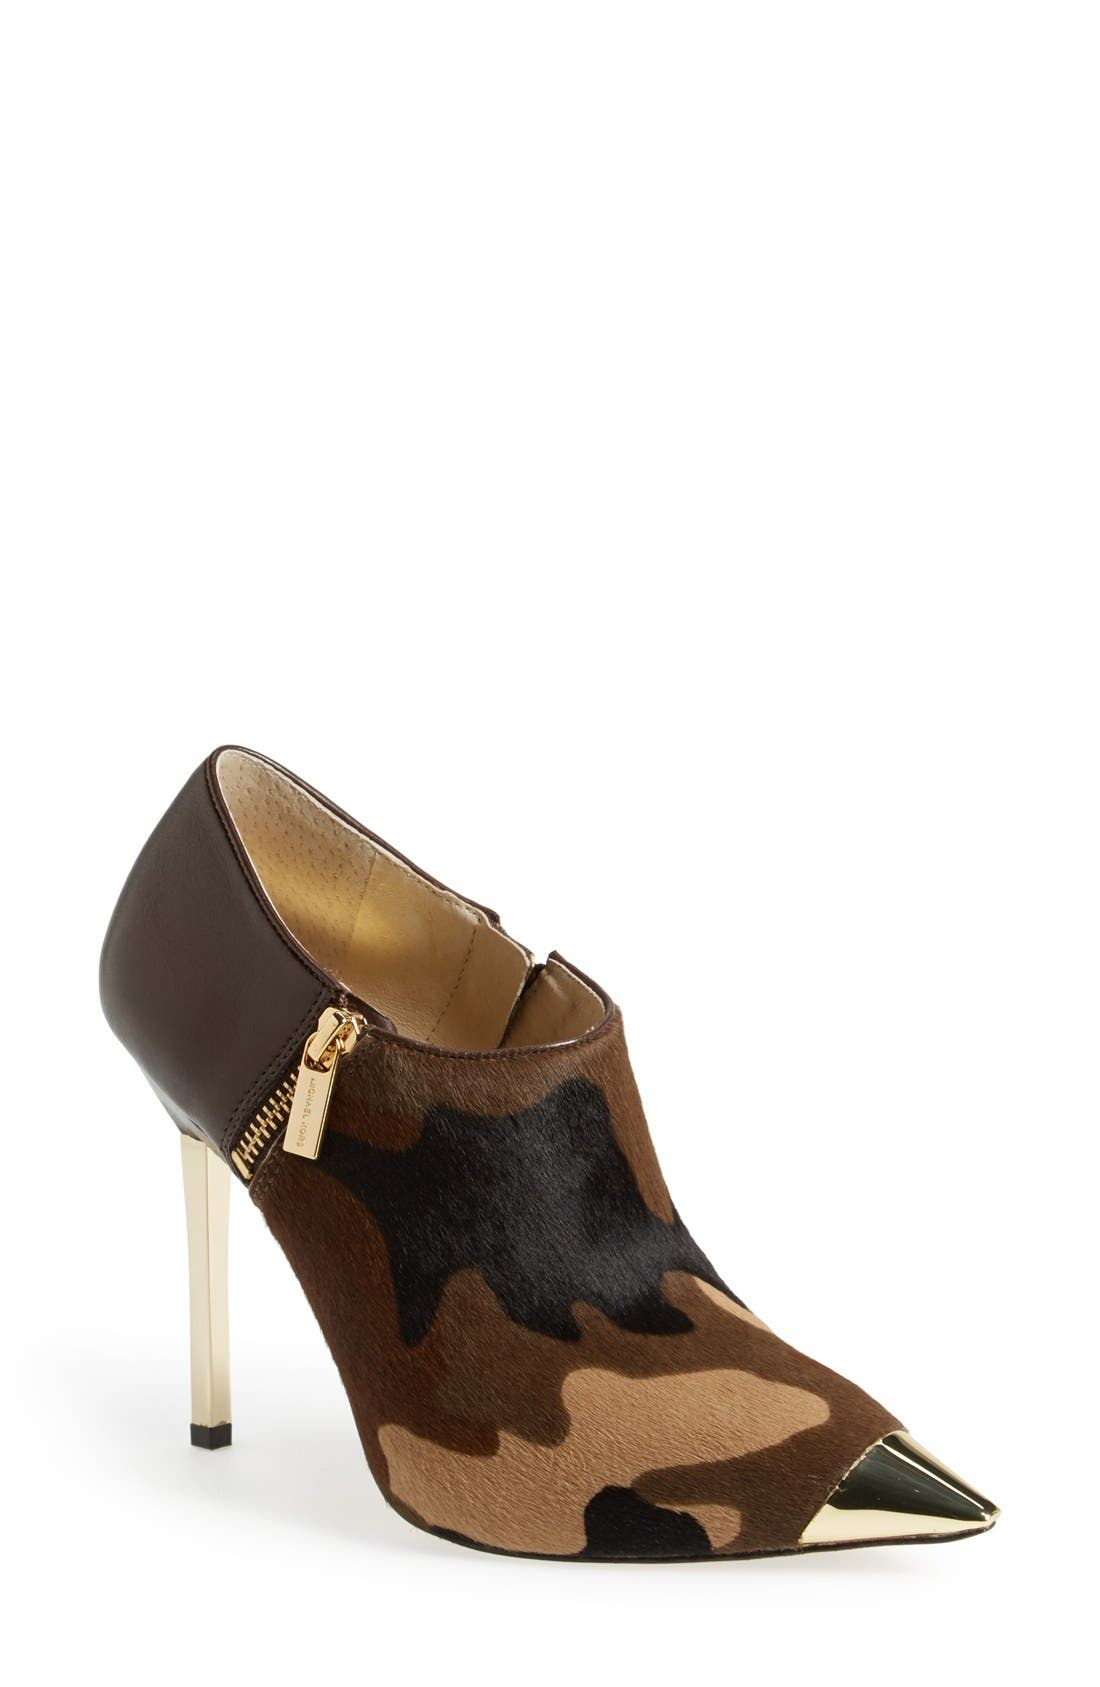 Alternate Image 1 Selected - MICHAEL Michael Kors 'Zady' Pointy Toe Bootie (Women)